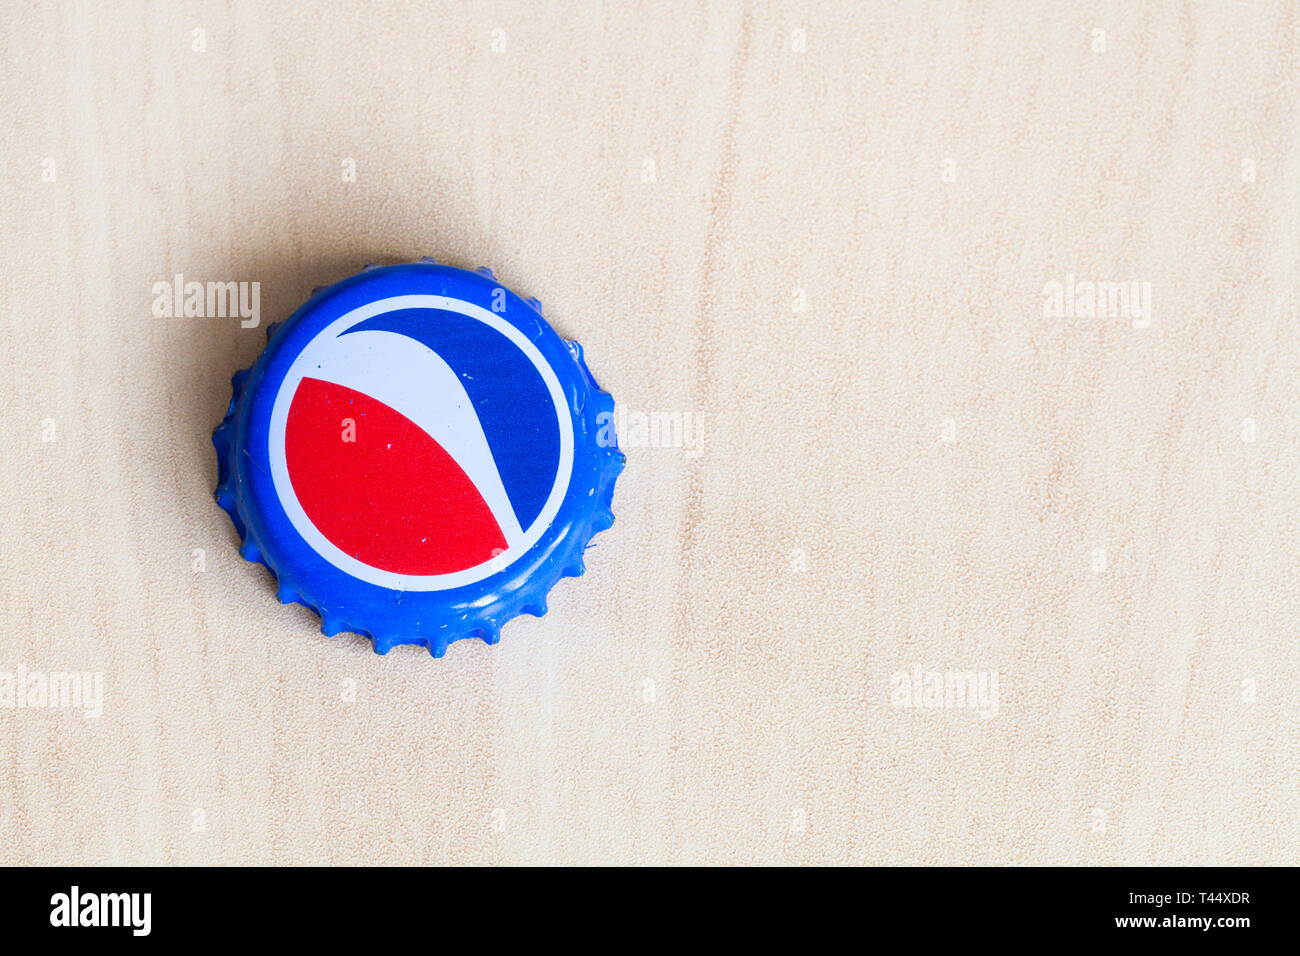 MOSCOW, RUSSIA - APRIL 4, 2019: used crown cork bottle cap from Pepsi beverage on wooden board with copyspace. Pepsi is carbonated soft drink manufact - Stock Image